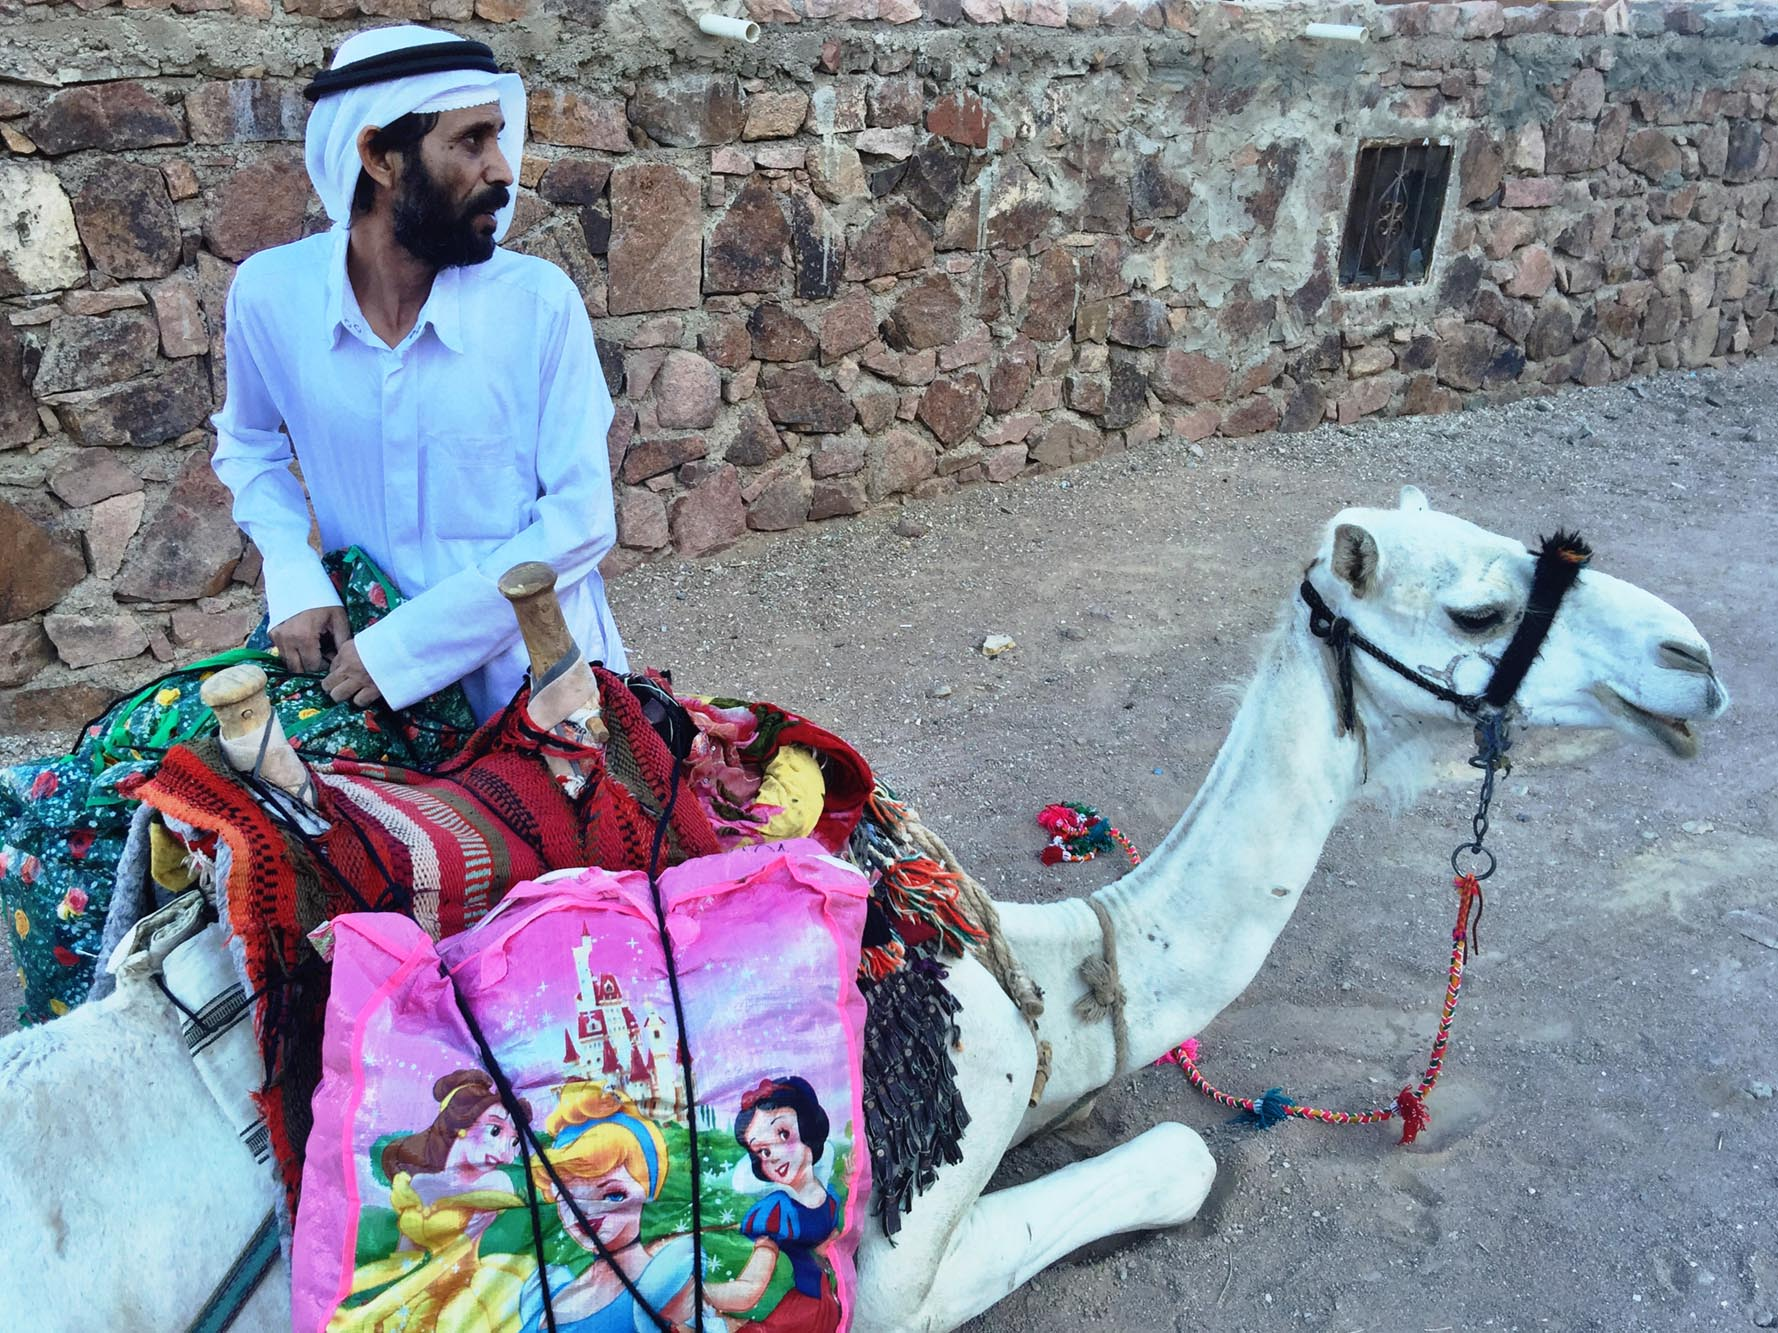 Mohamed loading his camel to collect crafts